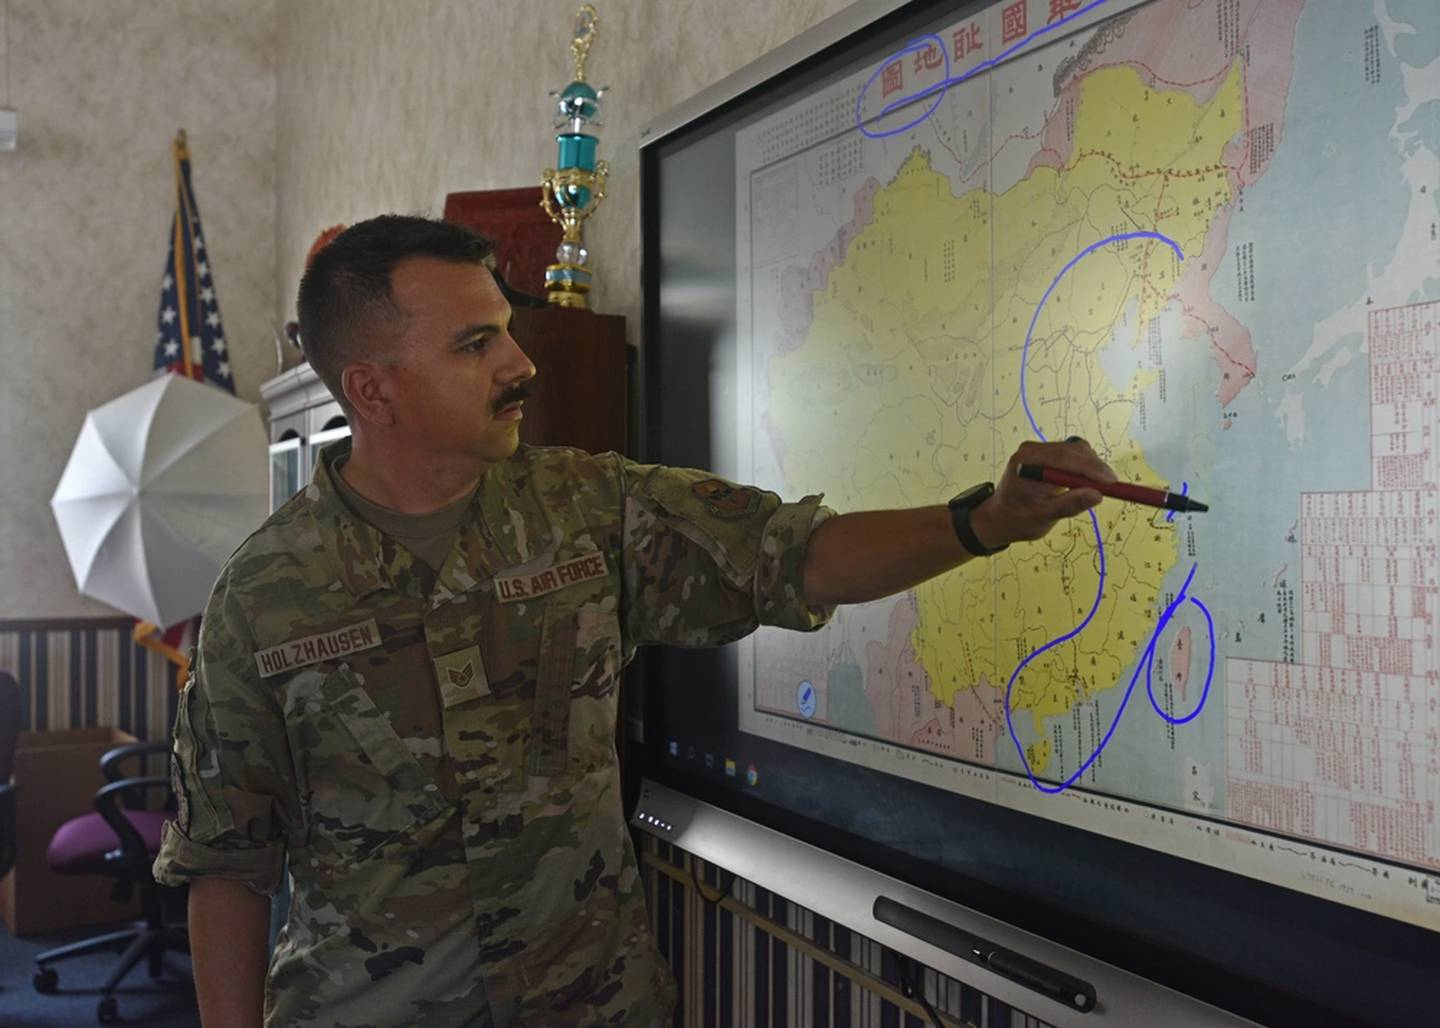 Air Force Staff Sgt. Uruwishi Holzhausen, 314th Training Squadron military language instructor, discusses the geography of China at the Presidio of Monterey, California, July 21, 2021. (Senior Airman Ashley Thrash/Air Force)